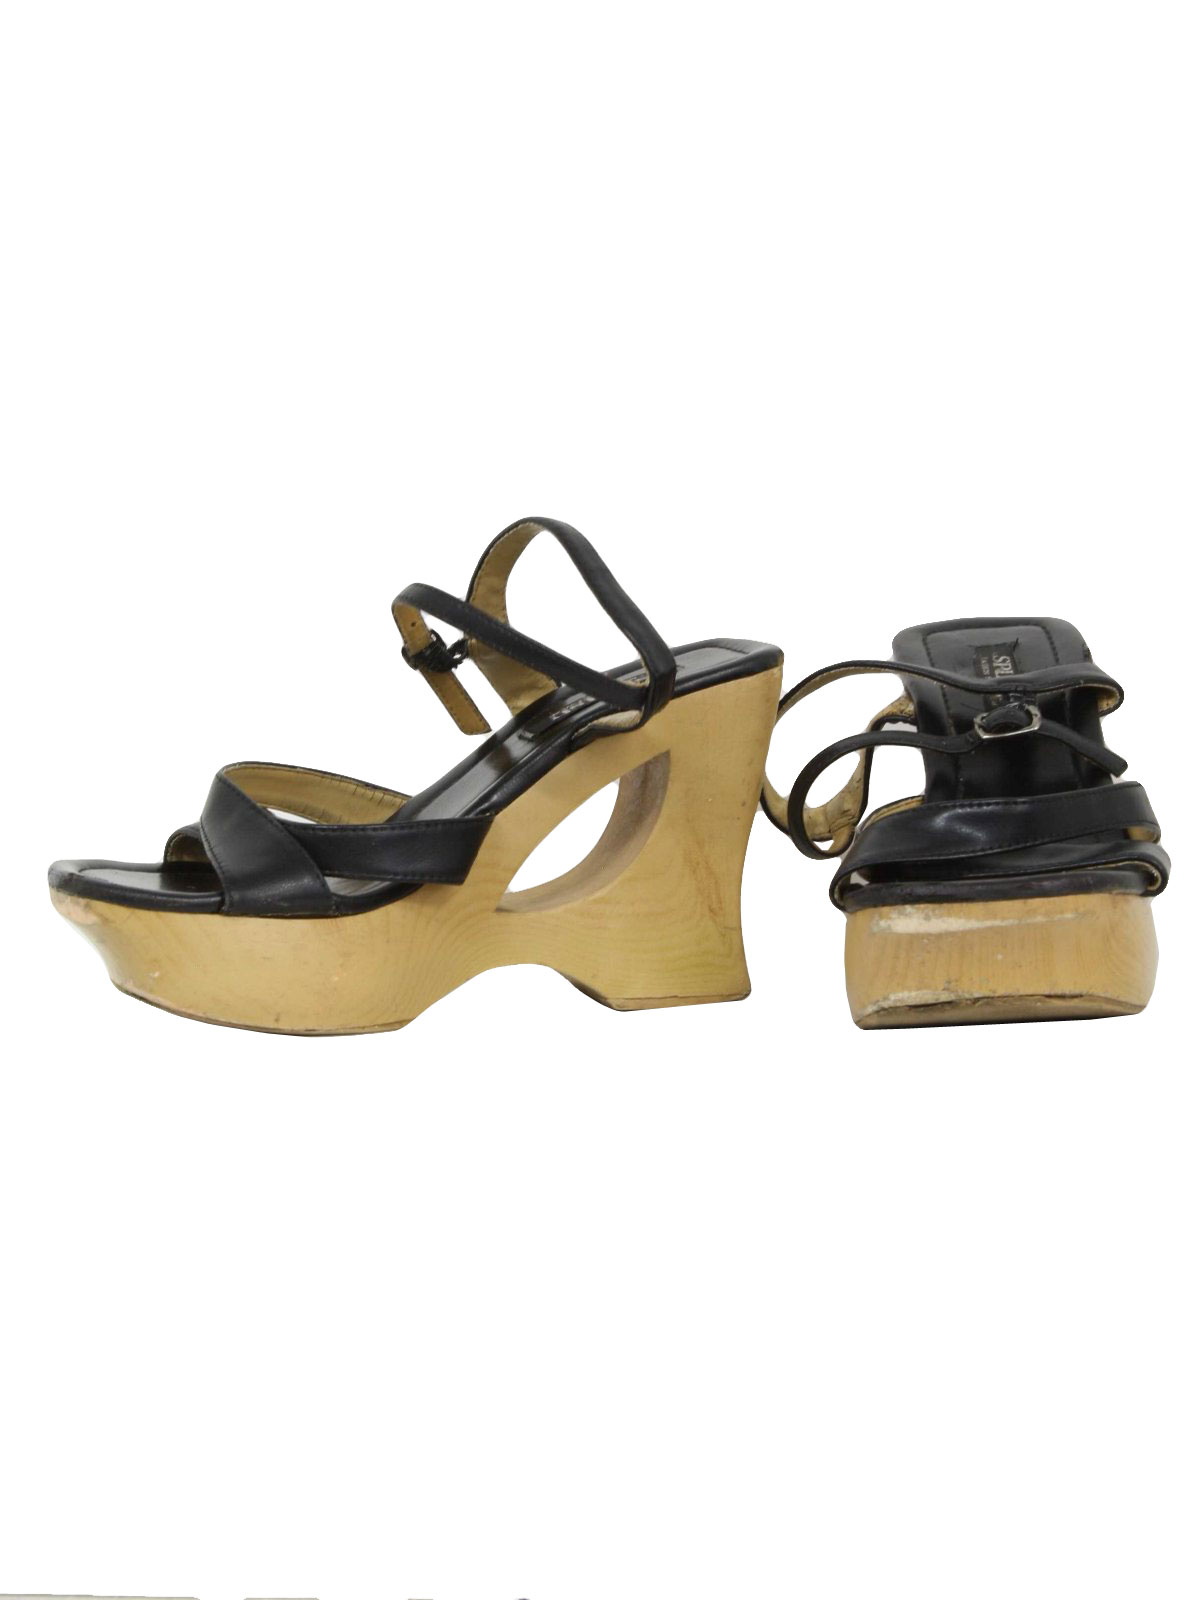 Rusty Gold Block Shoes For Women